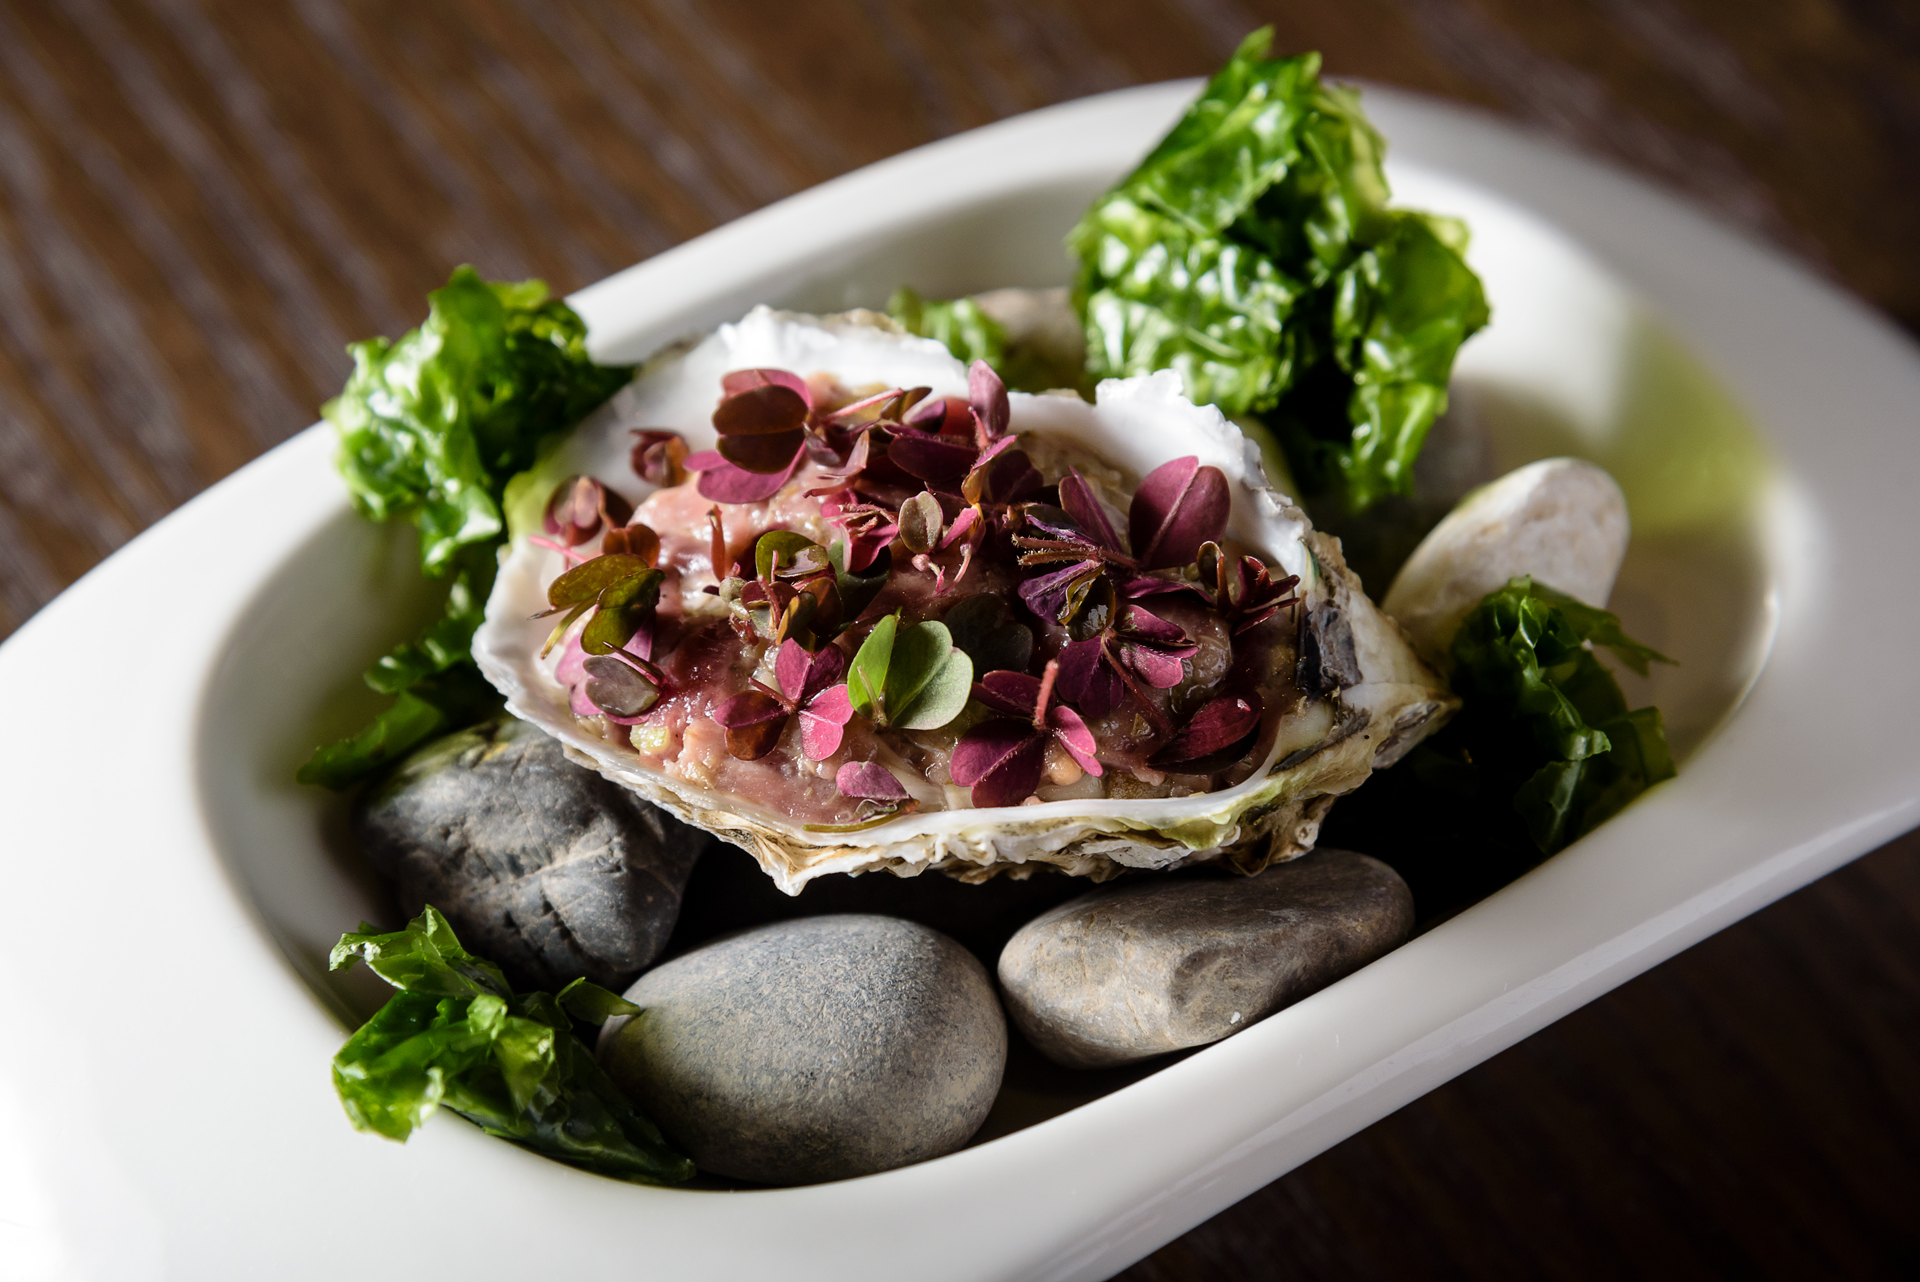 Food and product photography Millesime World Pedro Bargero Oyster